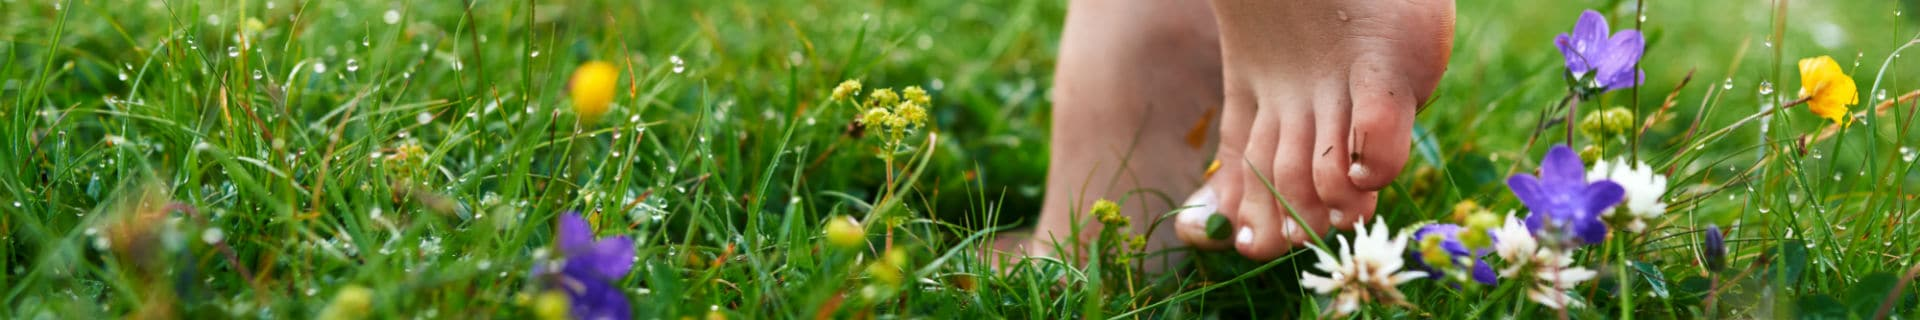 The 5 best barefoot paths in the Netherlands